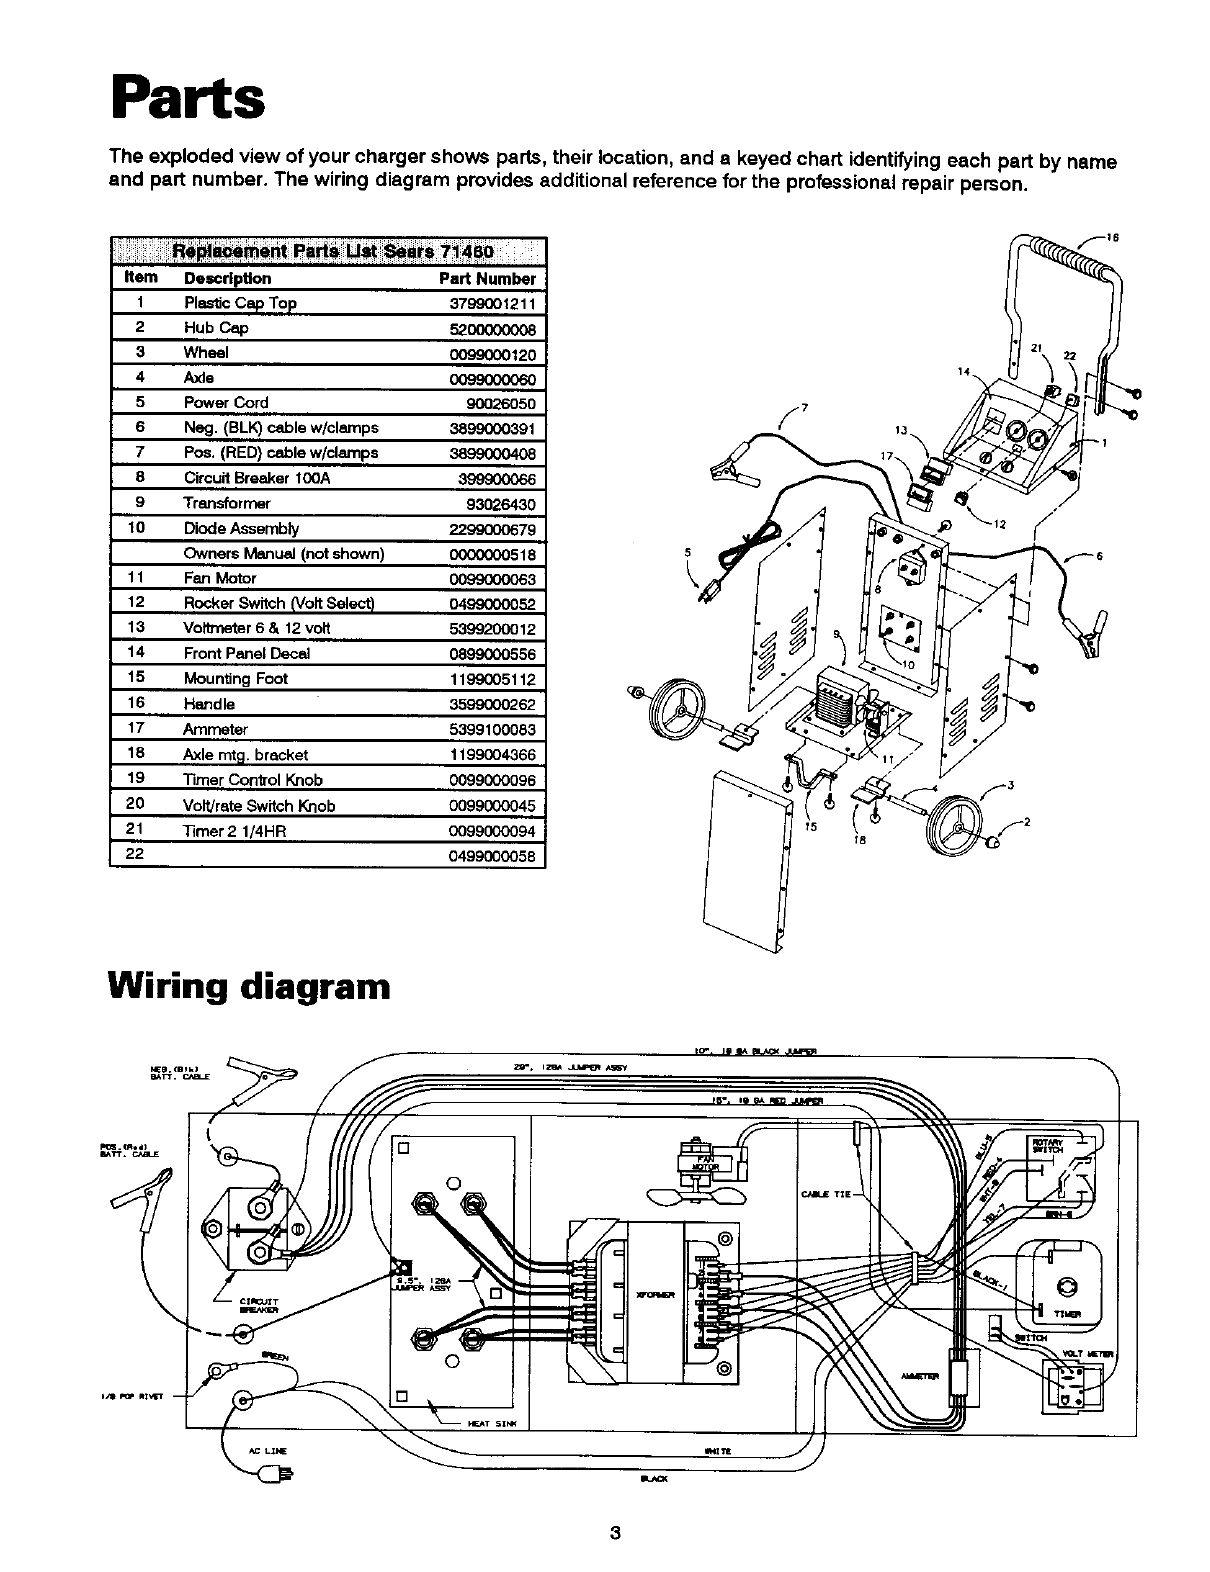 2004 Jeep Grand Cherokee Heater Wiring Harness besides Craftsman Battery Charger Wiring Diagram in addition Kabelboom16v Kr T159589 as well Msd 6al Wiring Diagram Gm Hei moreover Scion Switch Led. on vanagon fuse box diagram